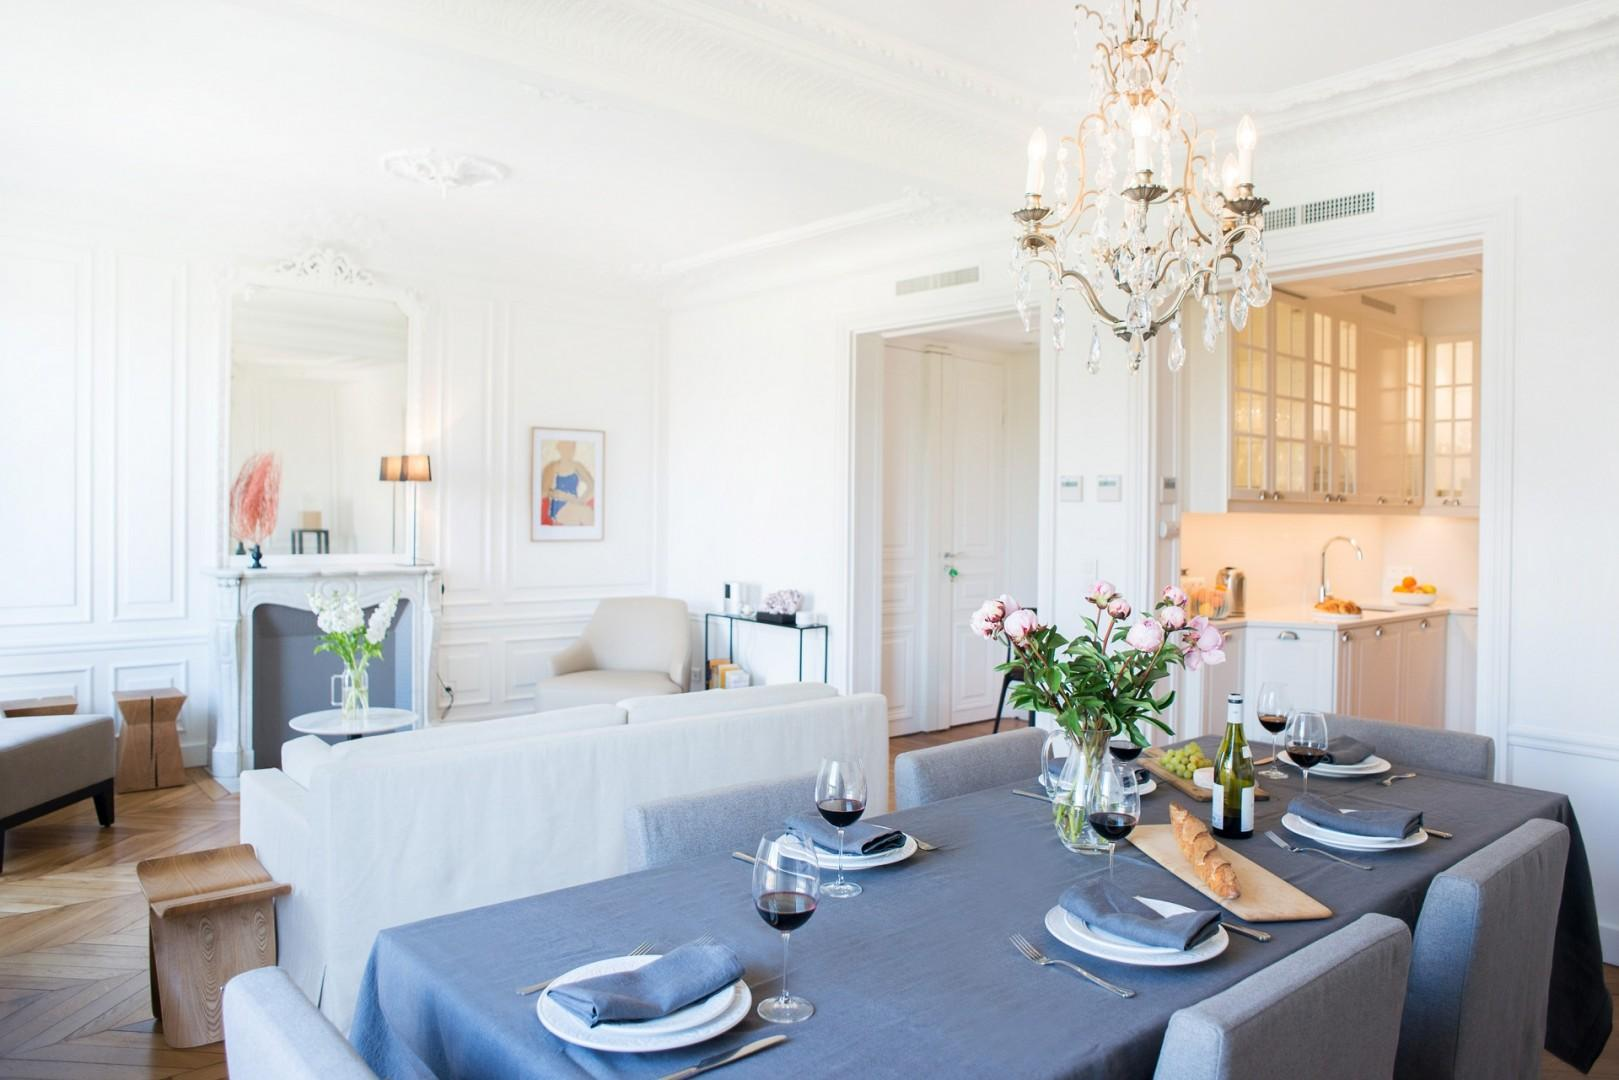 Dining at home is a pleasure in this luxury apartment.